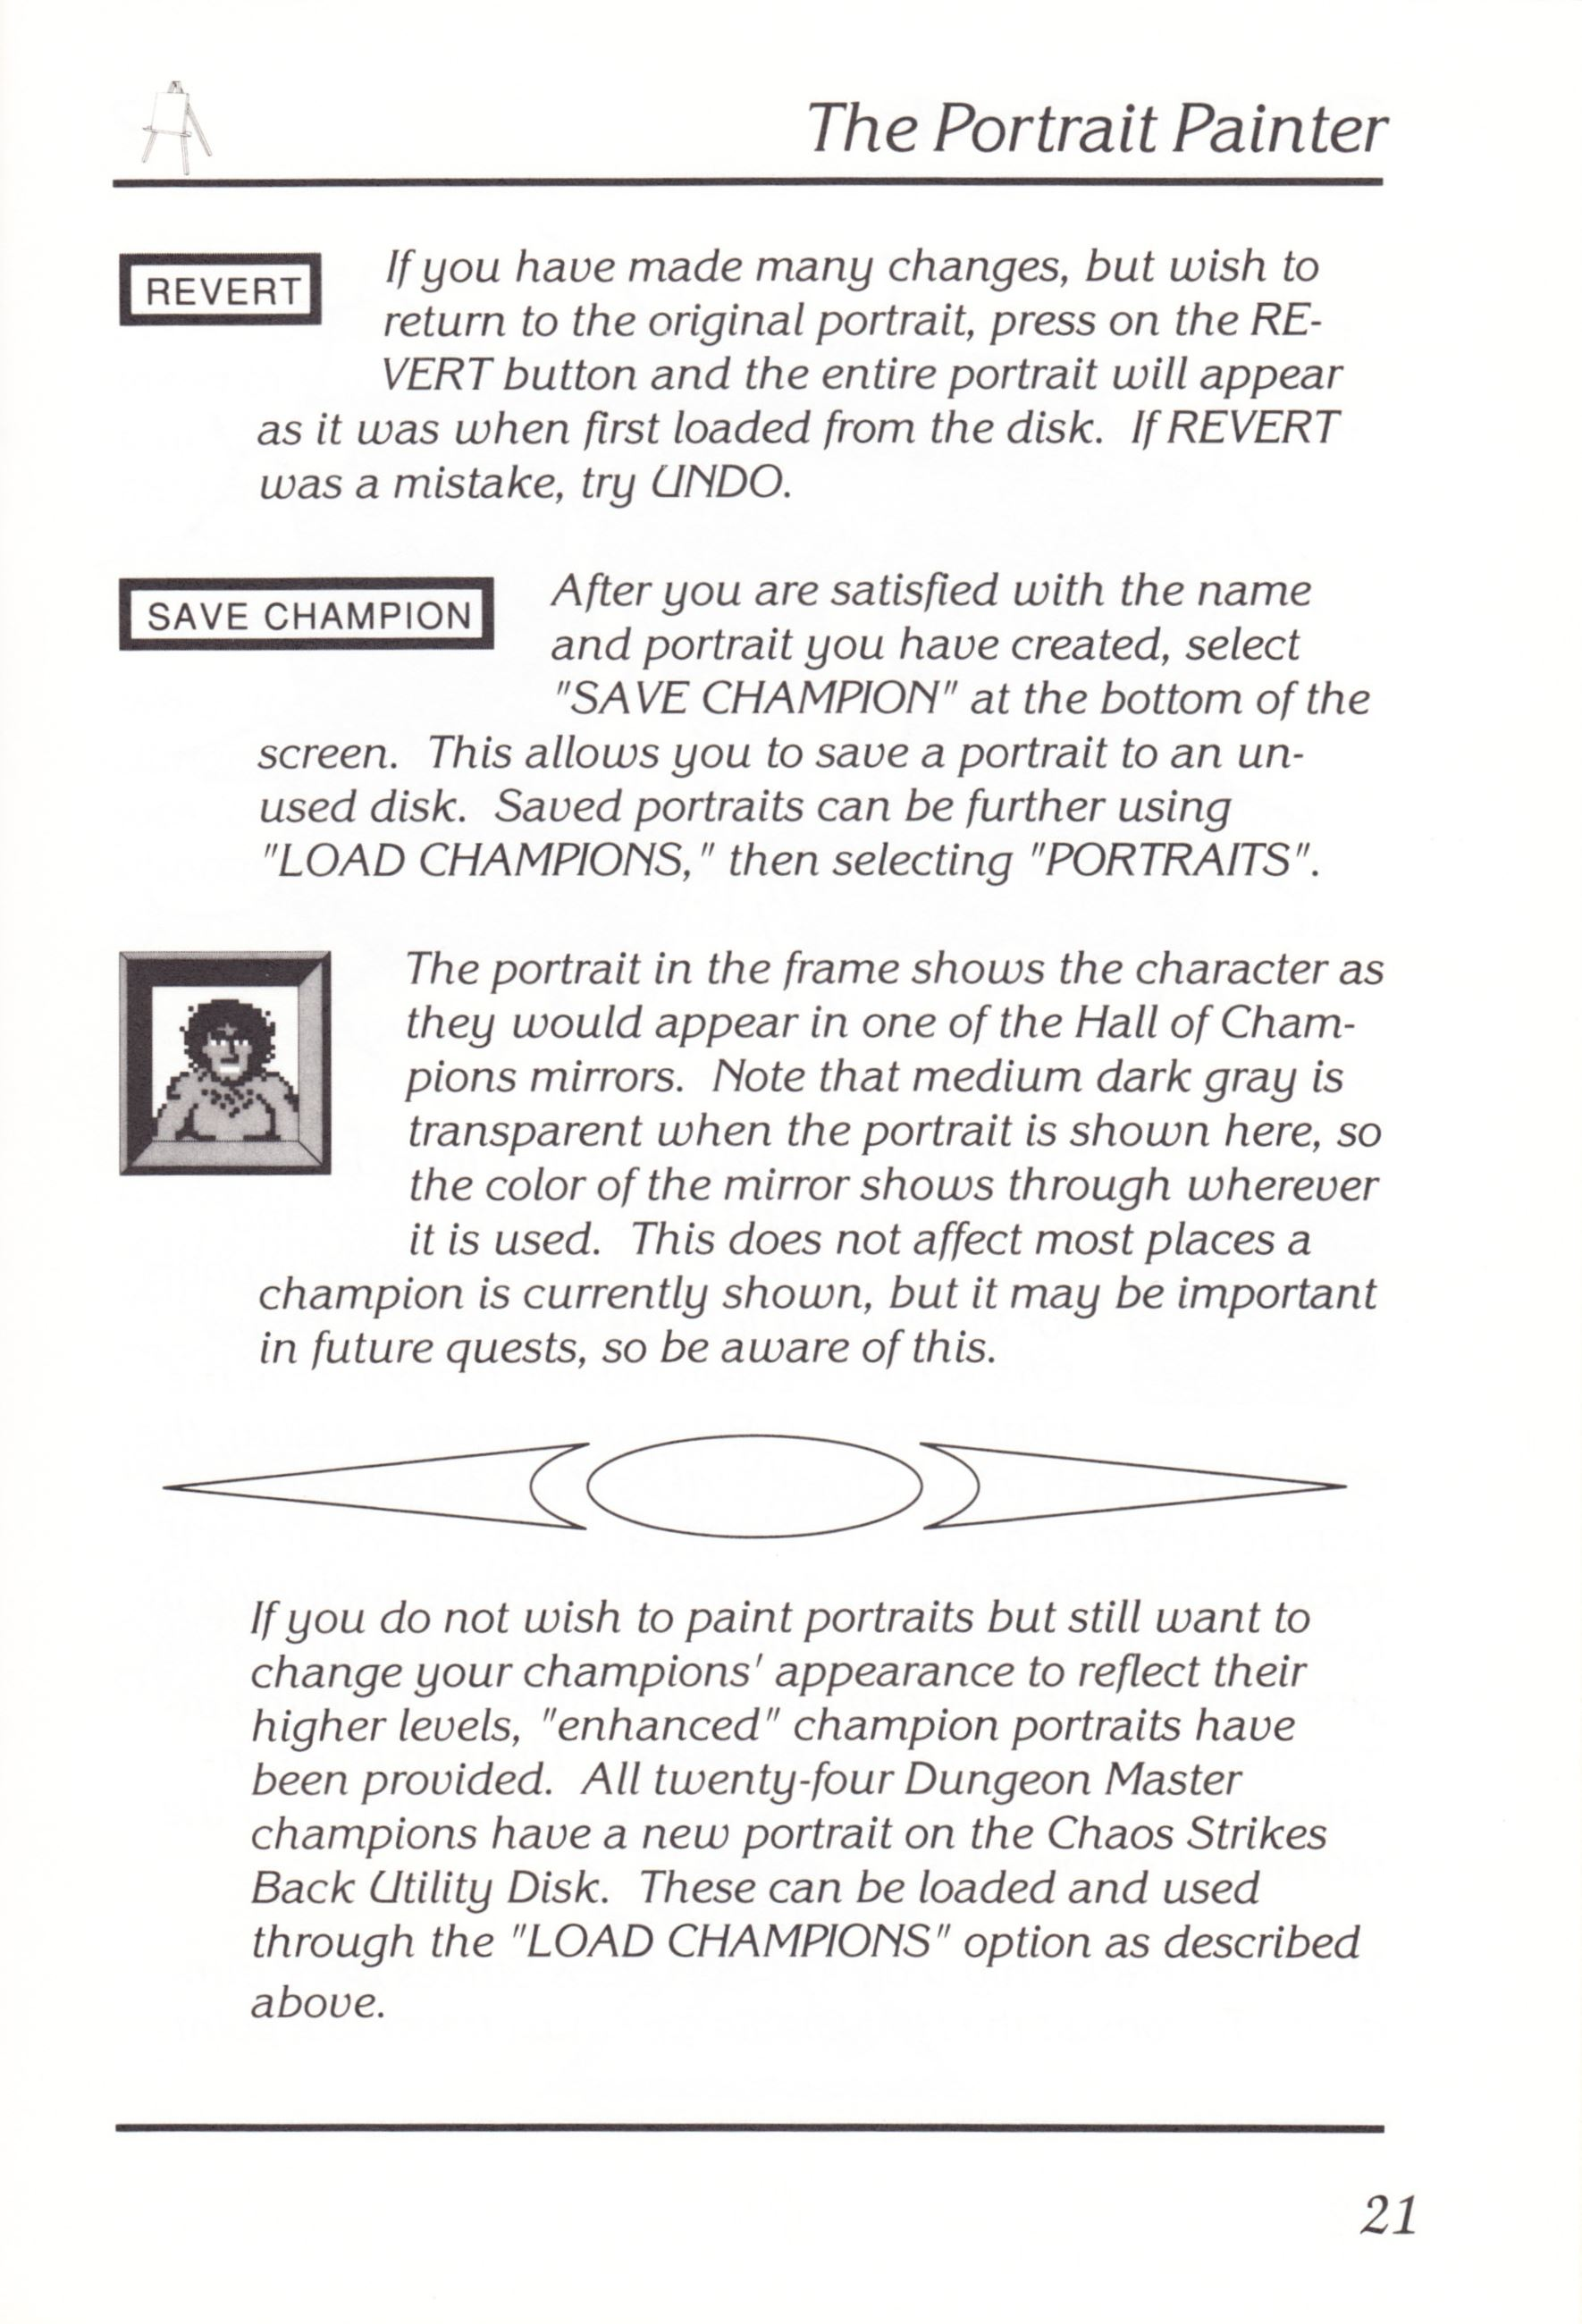 Game - Chaos Strikes Back - UK - Amiga - Manual - Page 023 - Scan